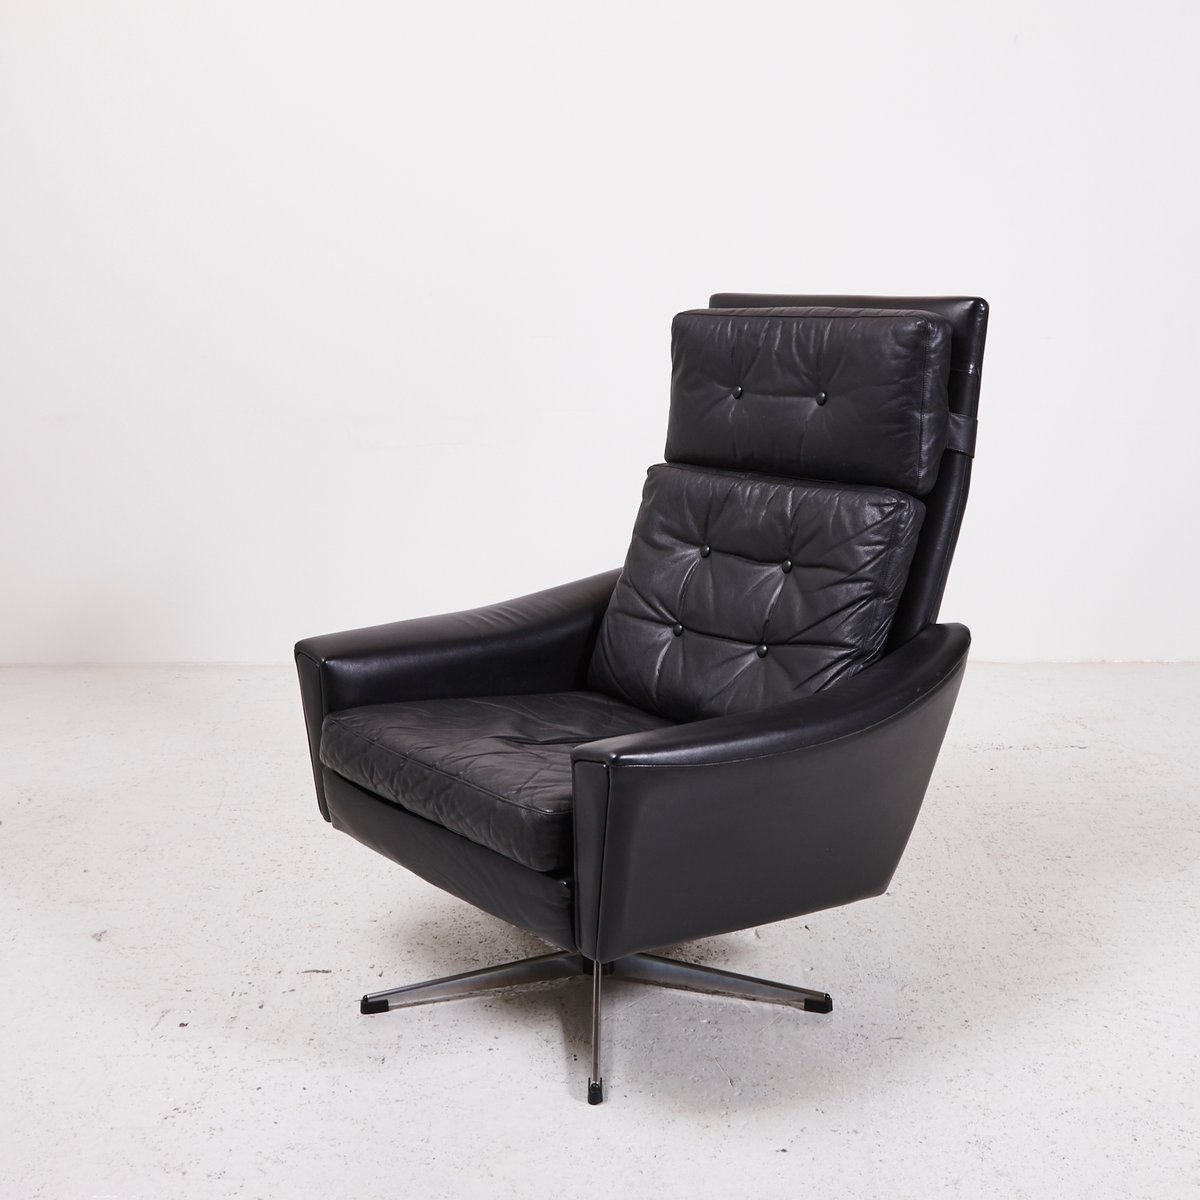 swivel chair black wedding reception types leather with star shaped stand 1970s